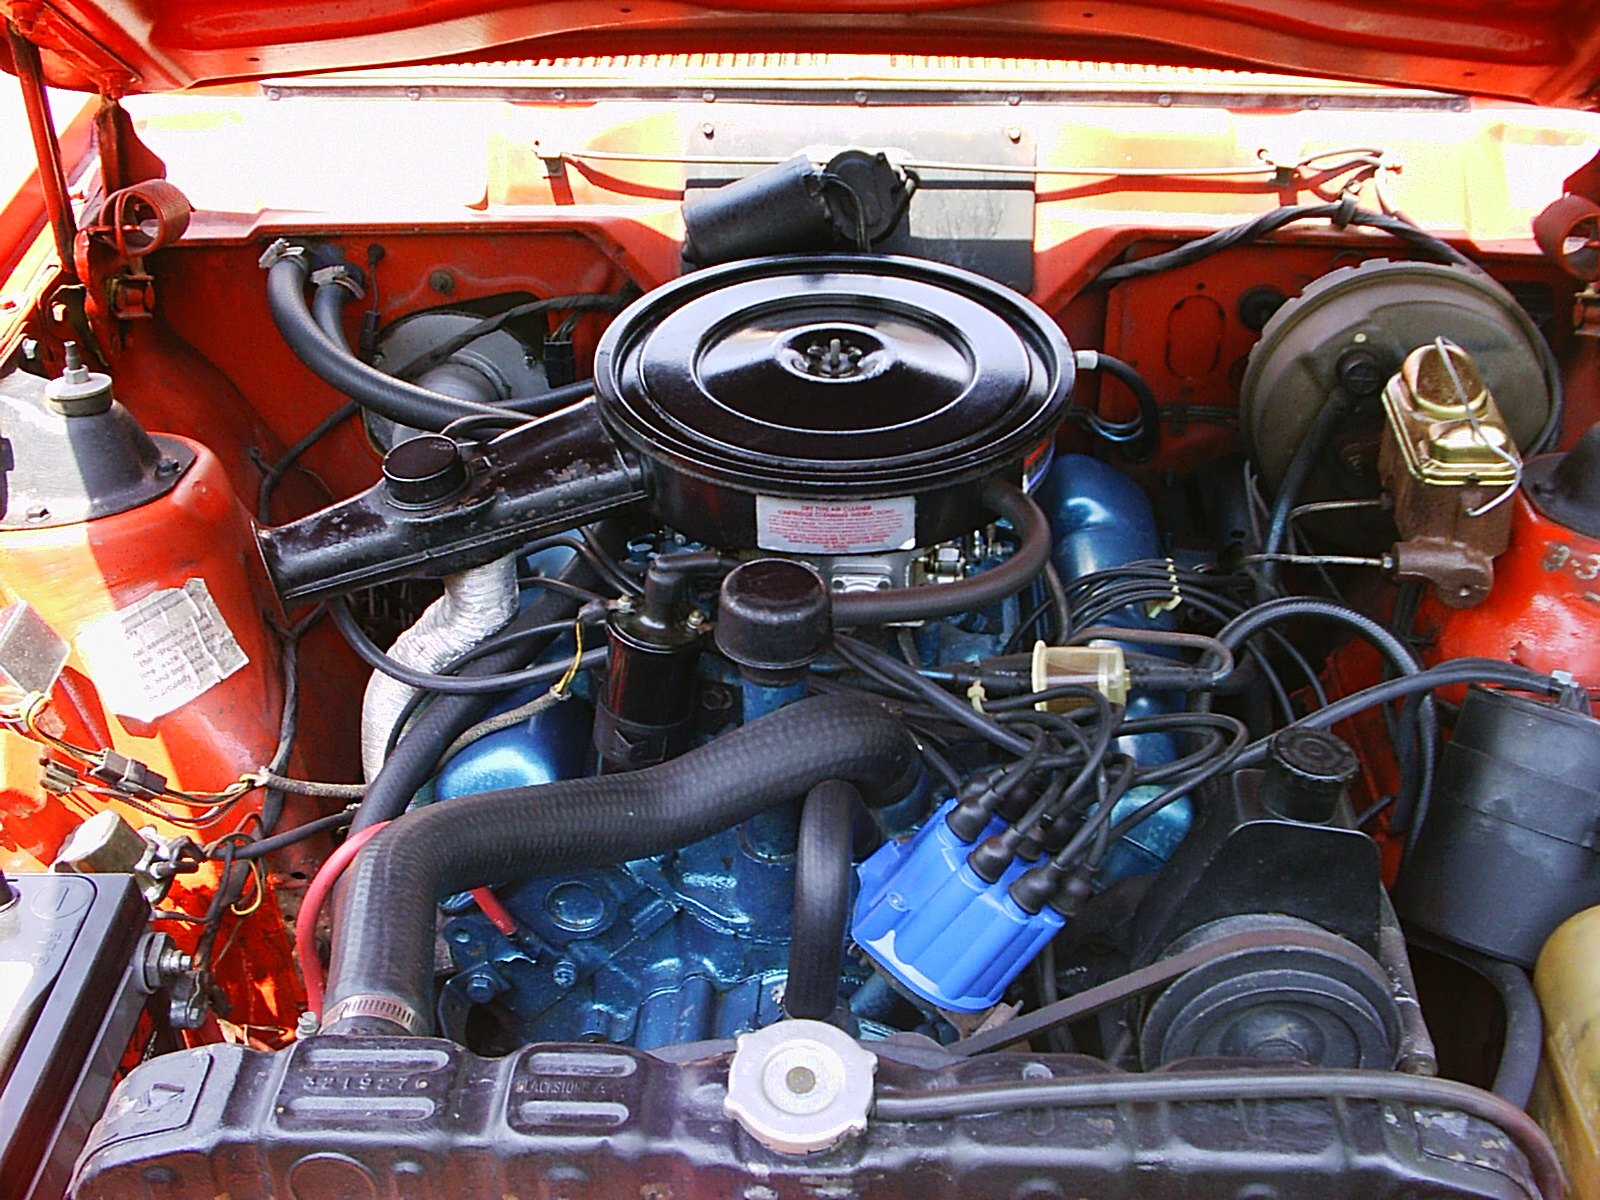 hight resolution of file 1973 hornet hatchback v8 red eng jpg